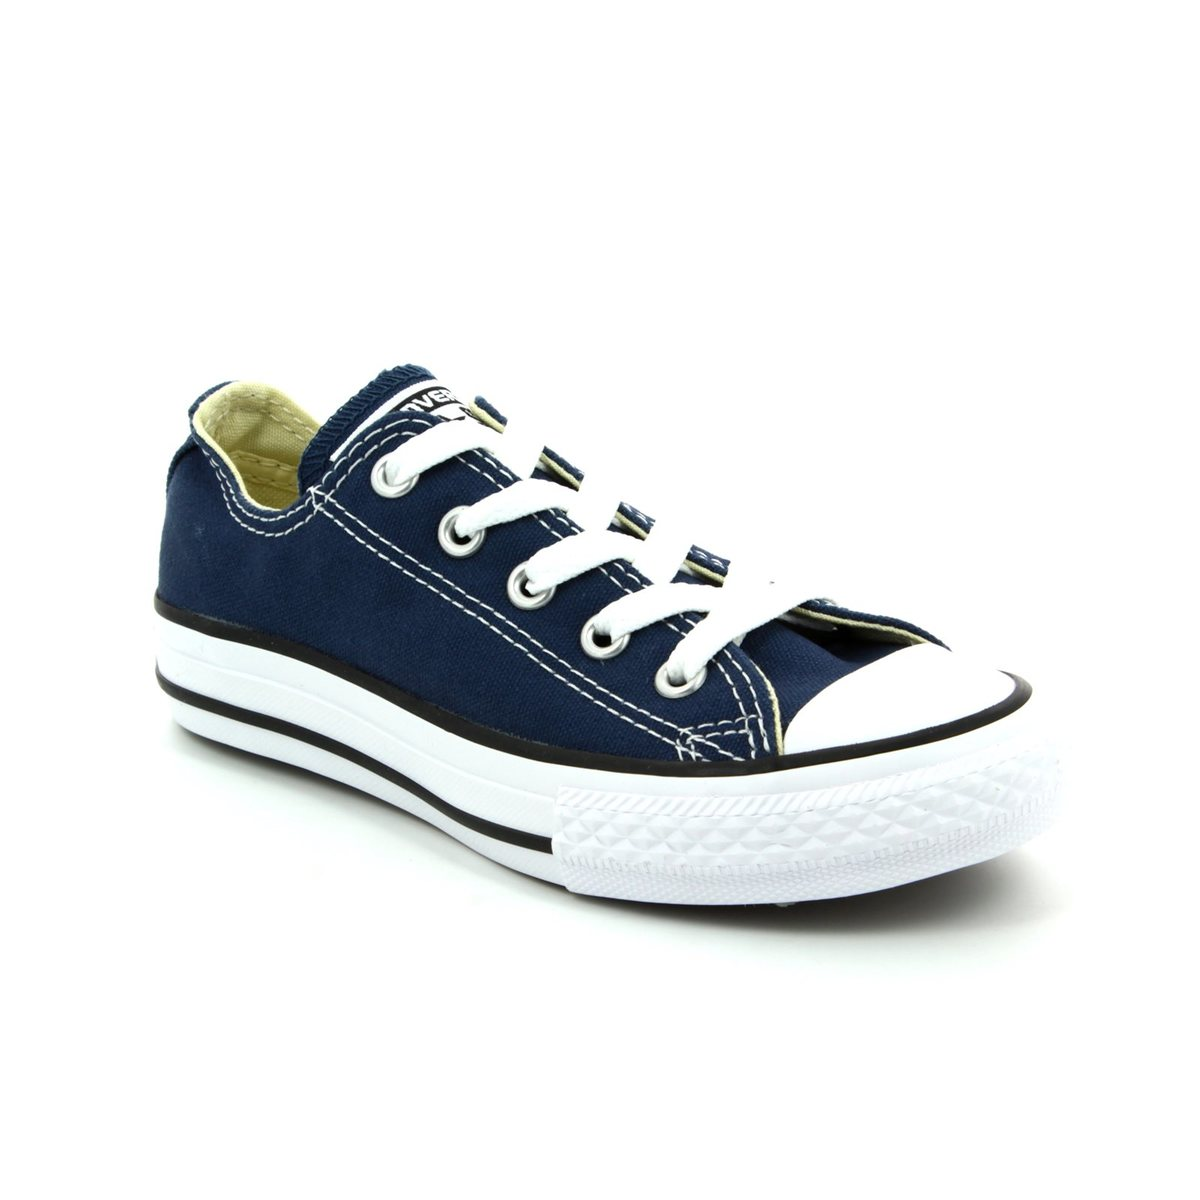 04367c1b4c04 Converse Trainers - Navy - 3J237C Chuck Taylor All Star OX Youth